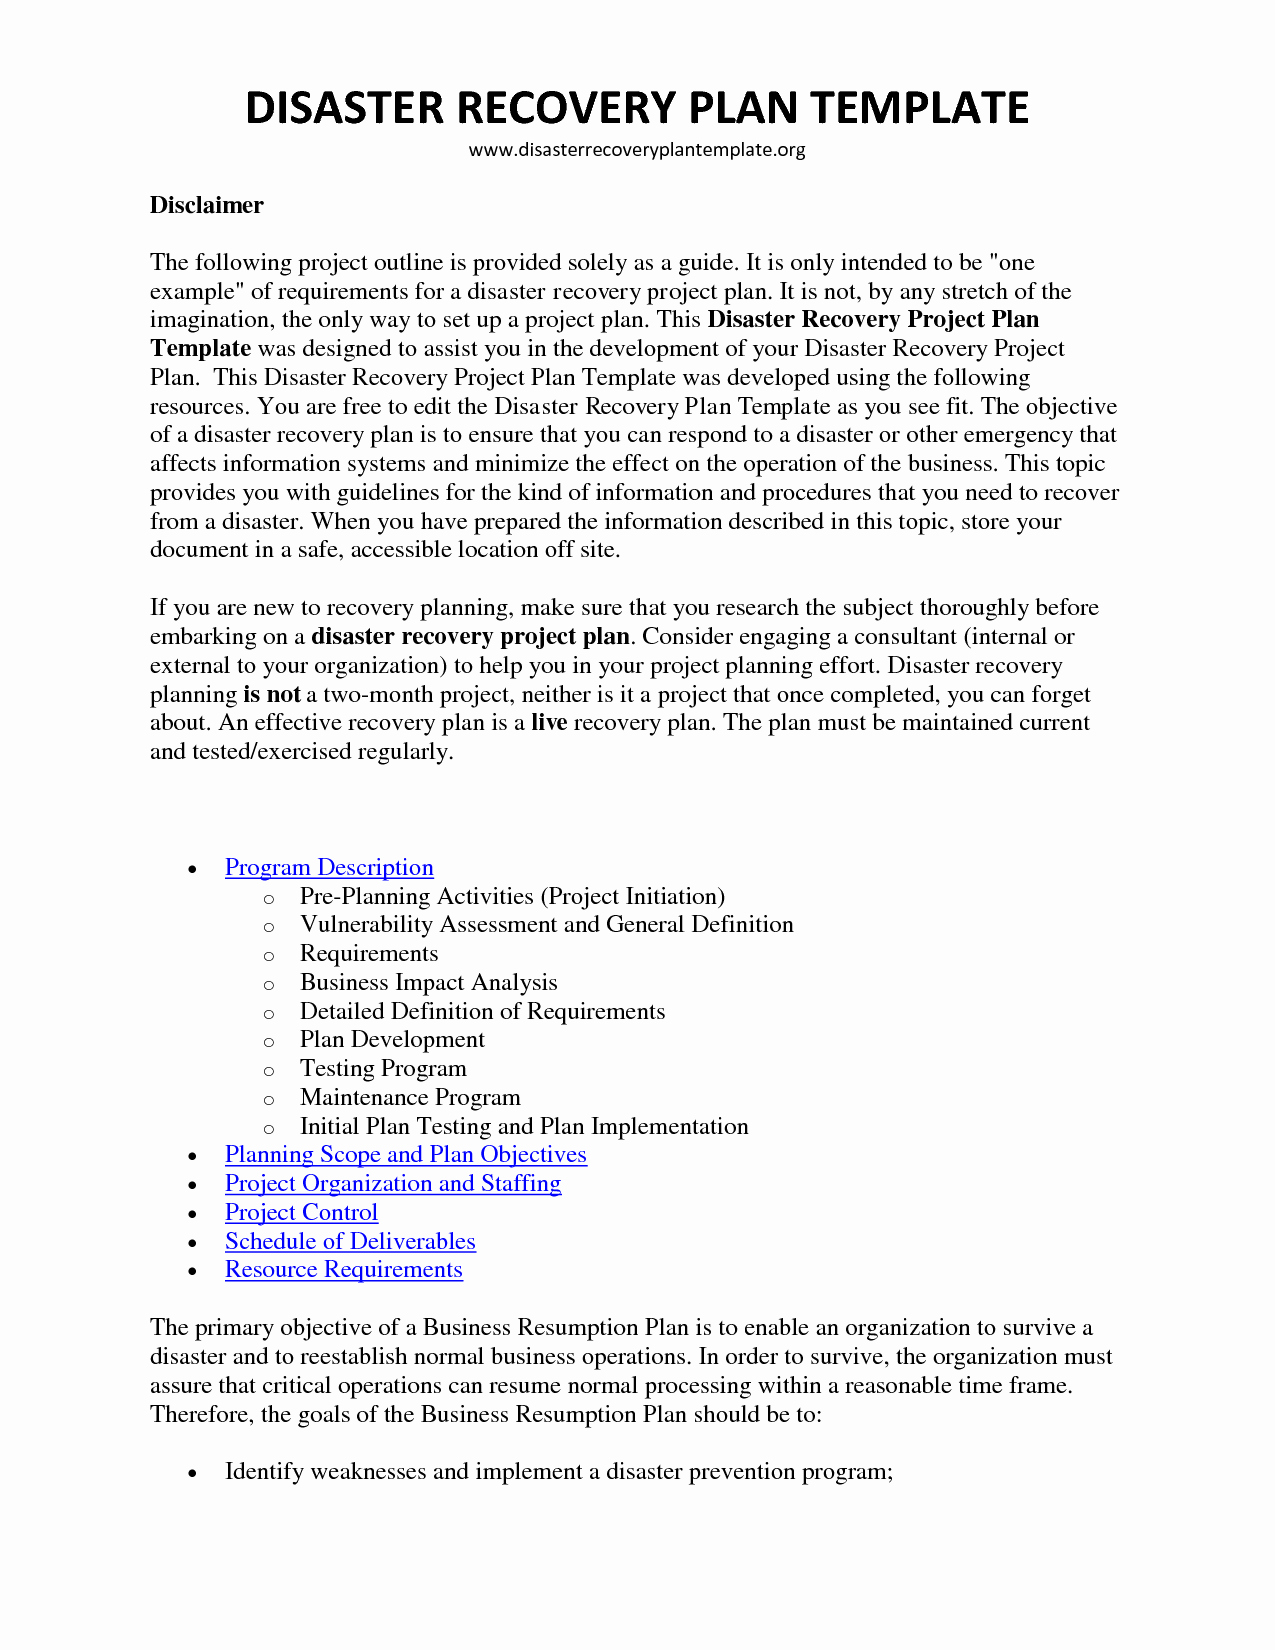 Simple Disaster Recovery Plan Template Inspirational Disaster Recovery Plan Template